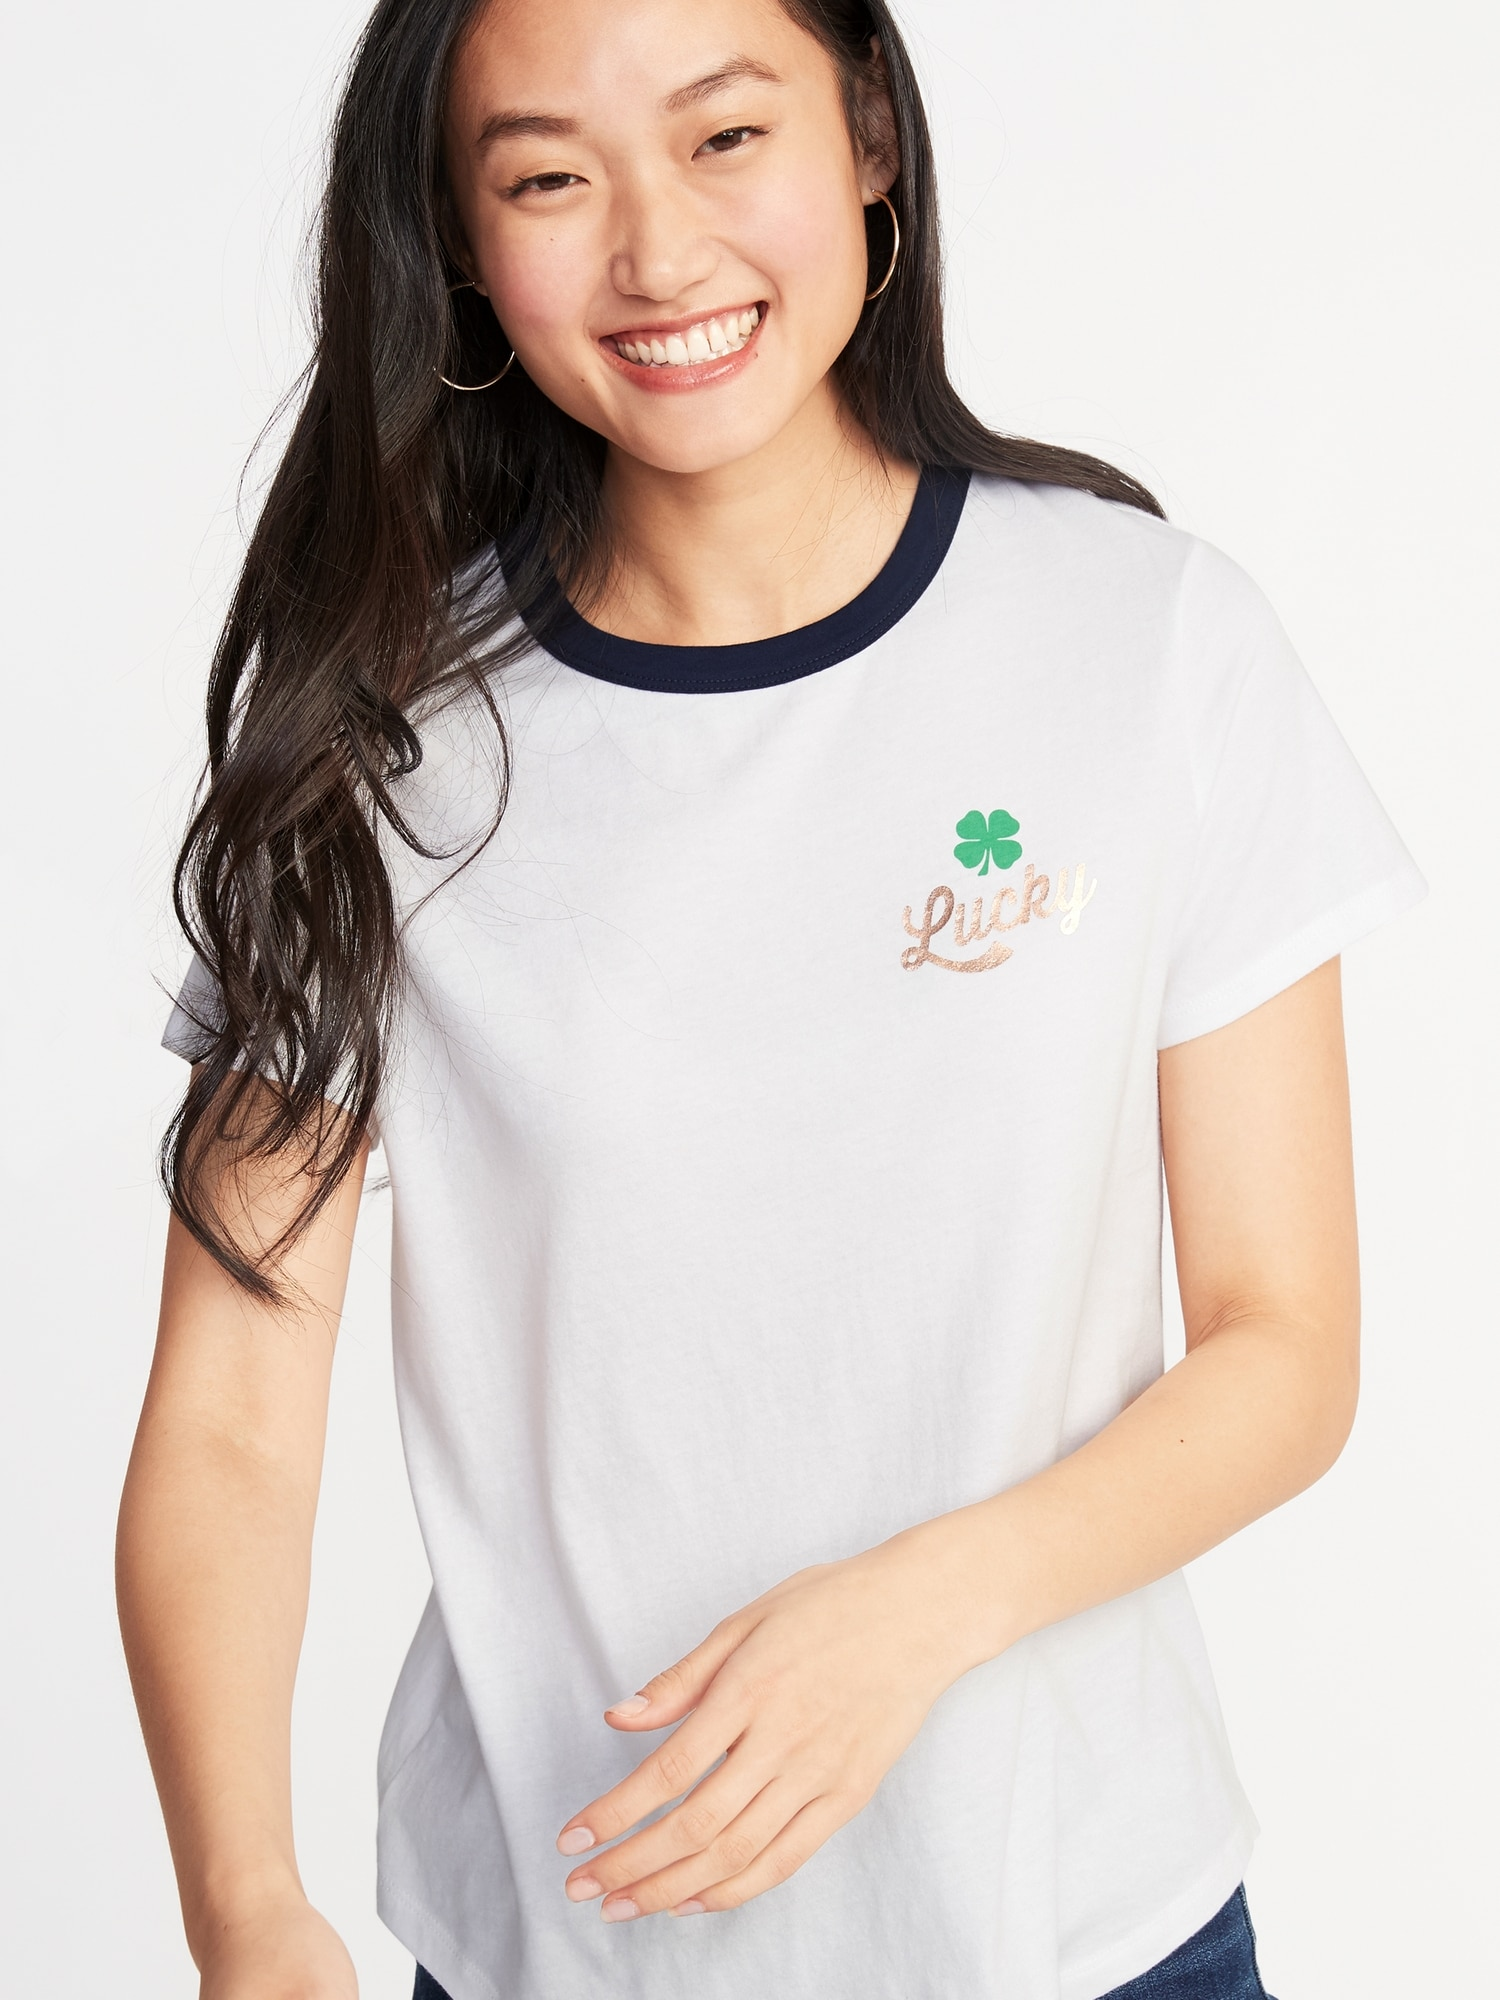 ad374e404fd2 EveryWear St. Patrick s Day Graphic Tee for Women